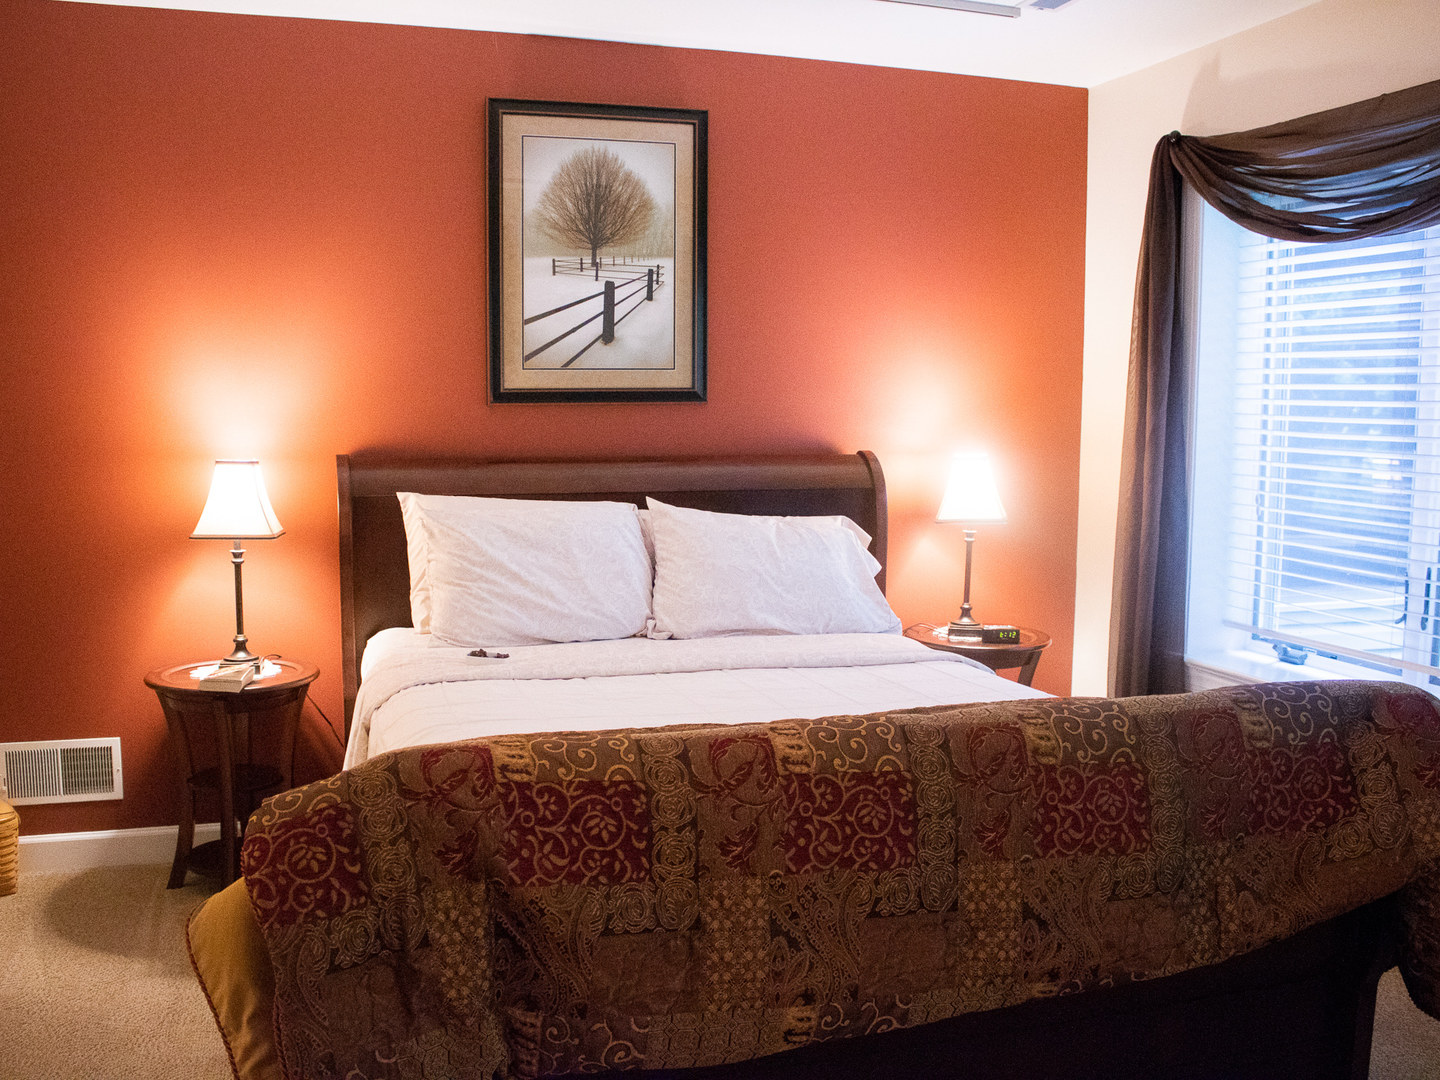 A bedroom with a large bed in a hotel room at Hammer Creek Hideaway Bed & Breakfast.